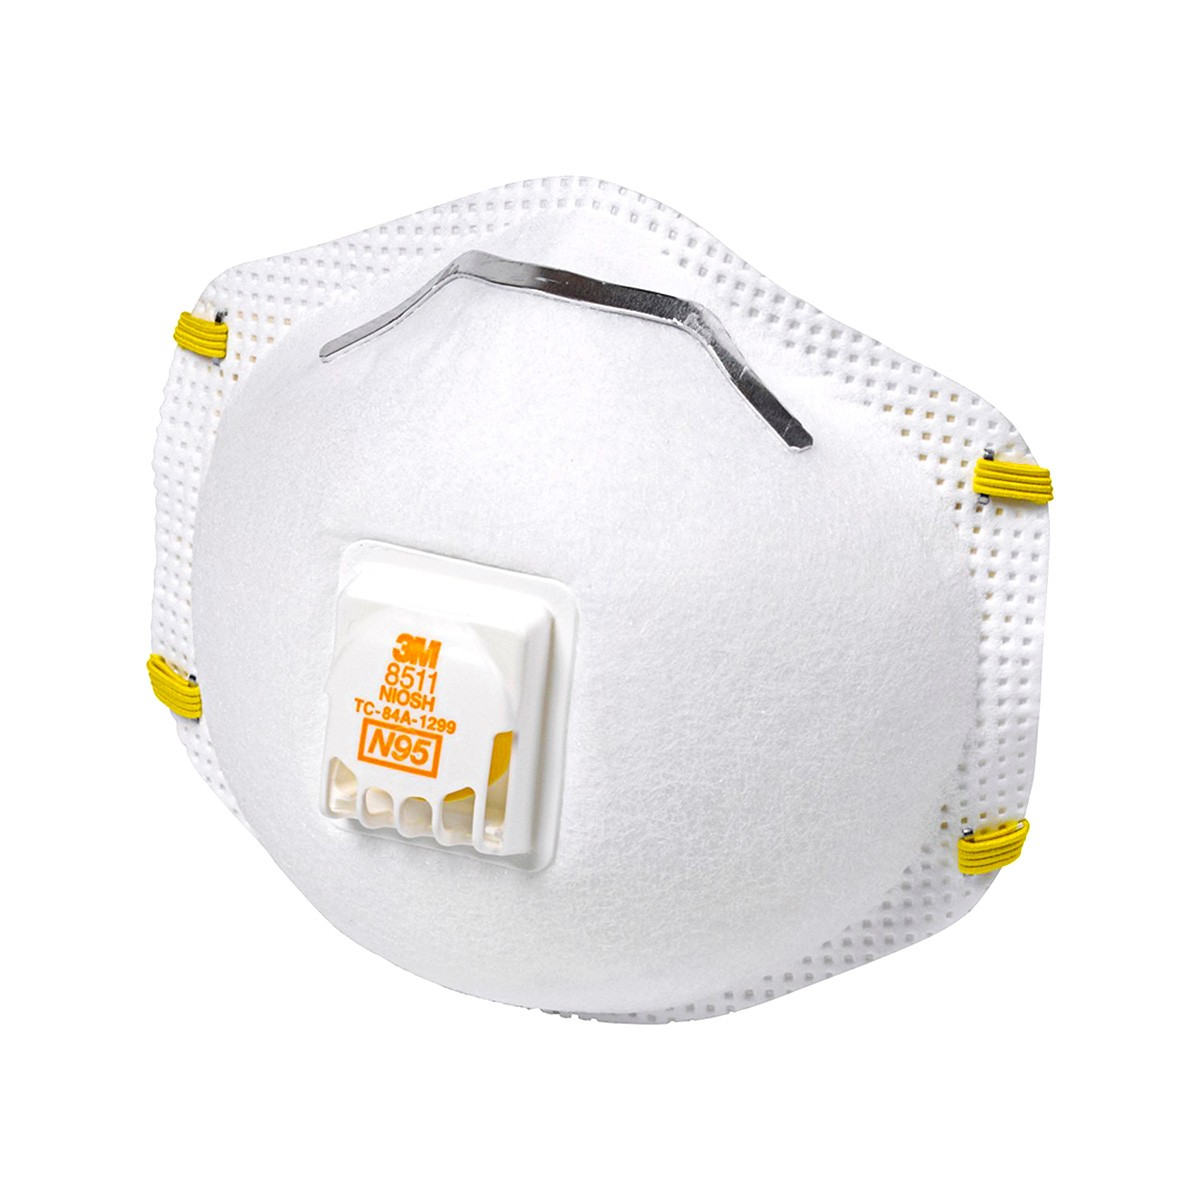 N95 Particulate Of Respirator 8511 3m™ box 10